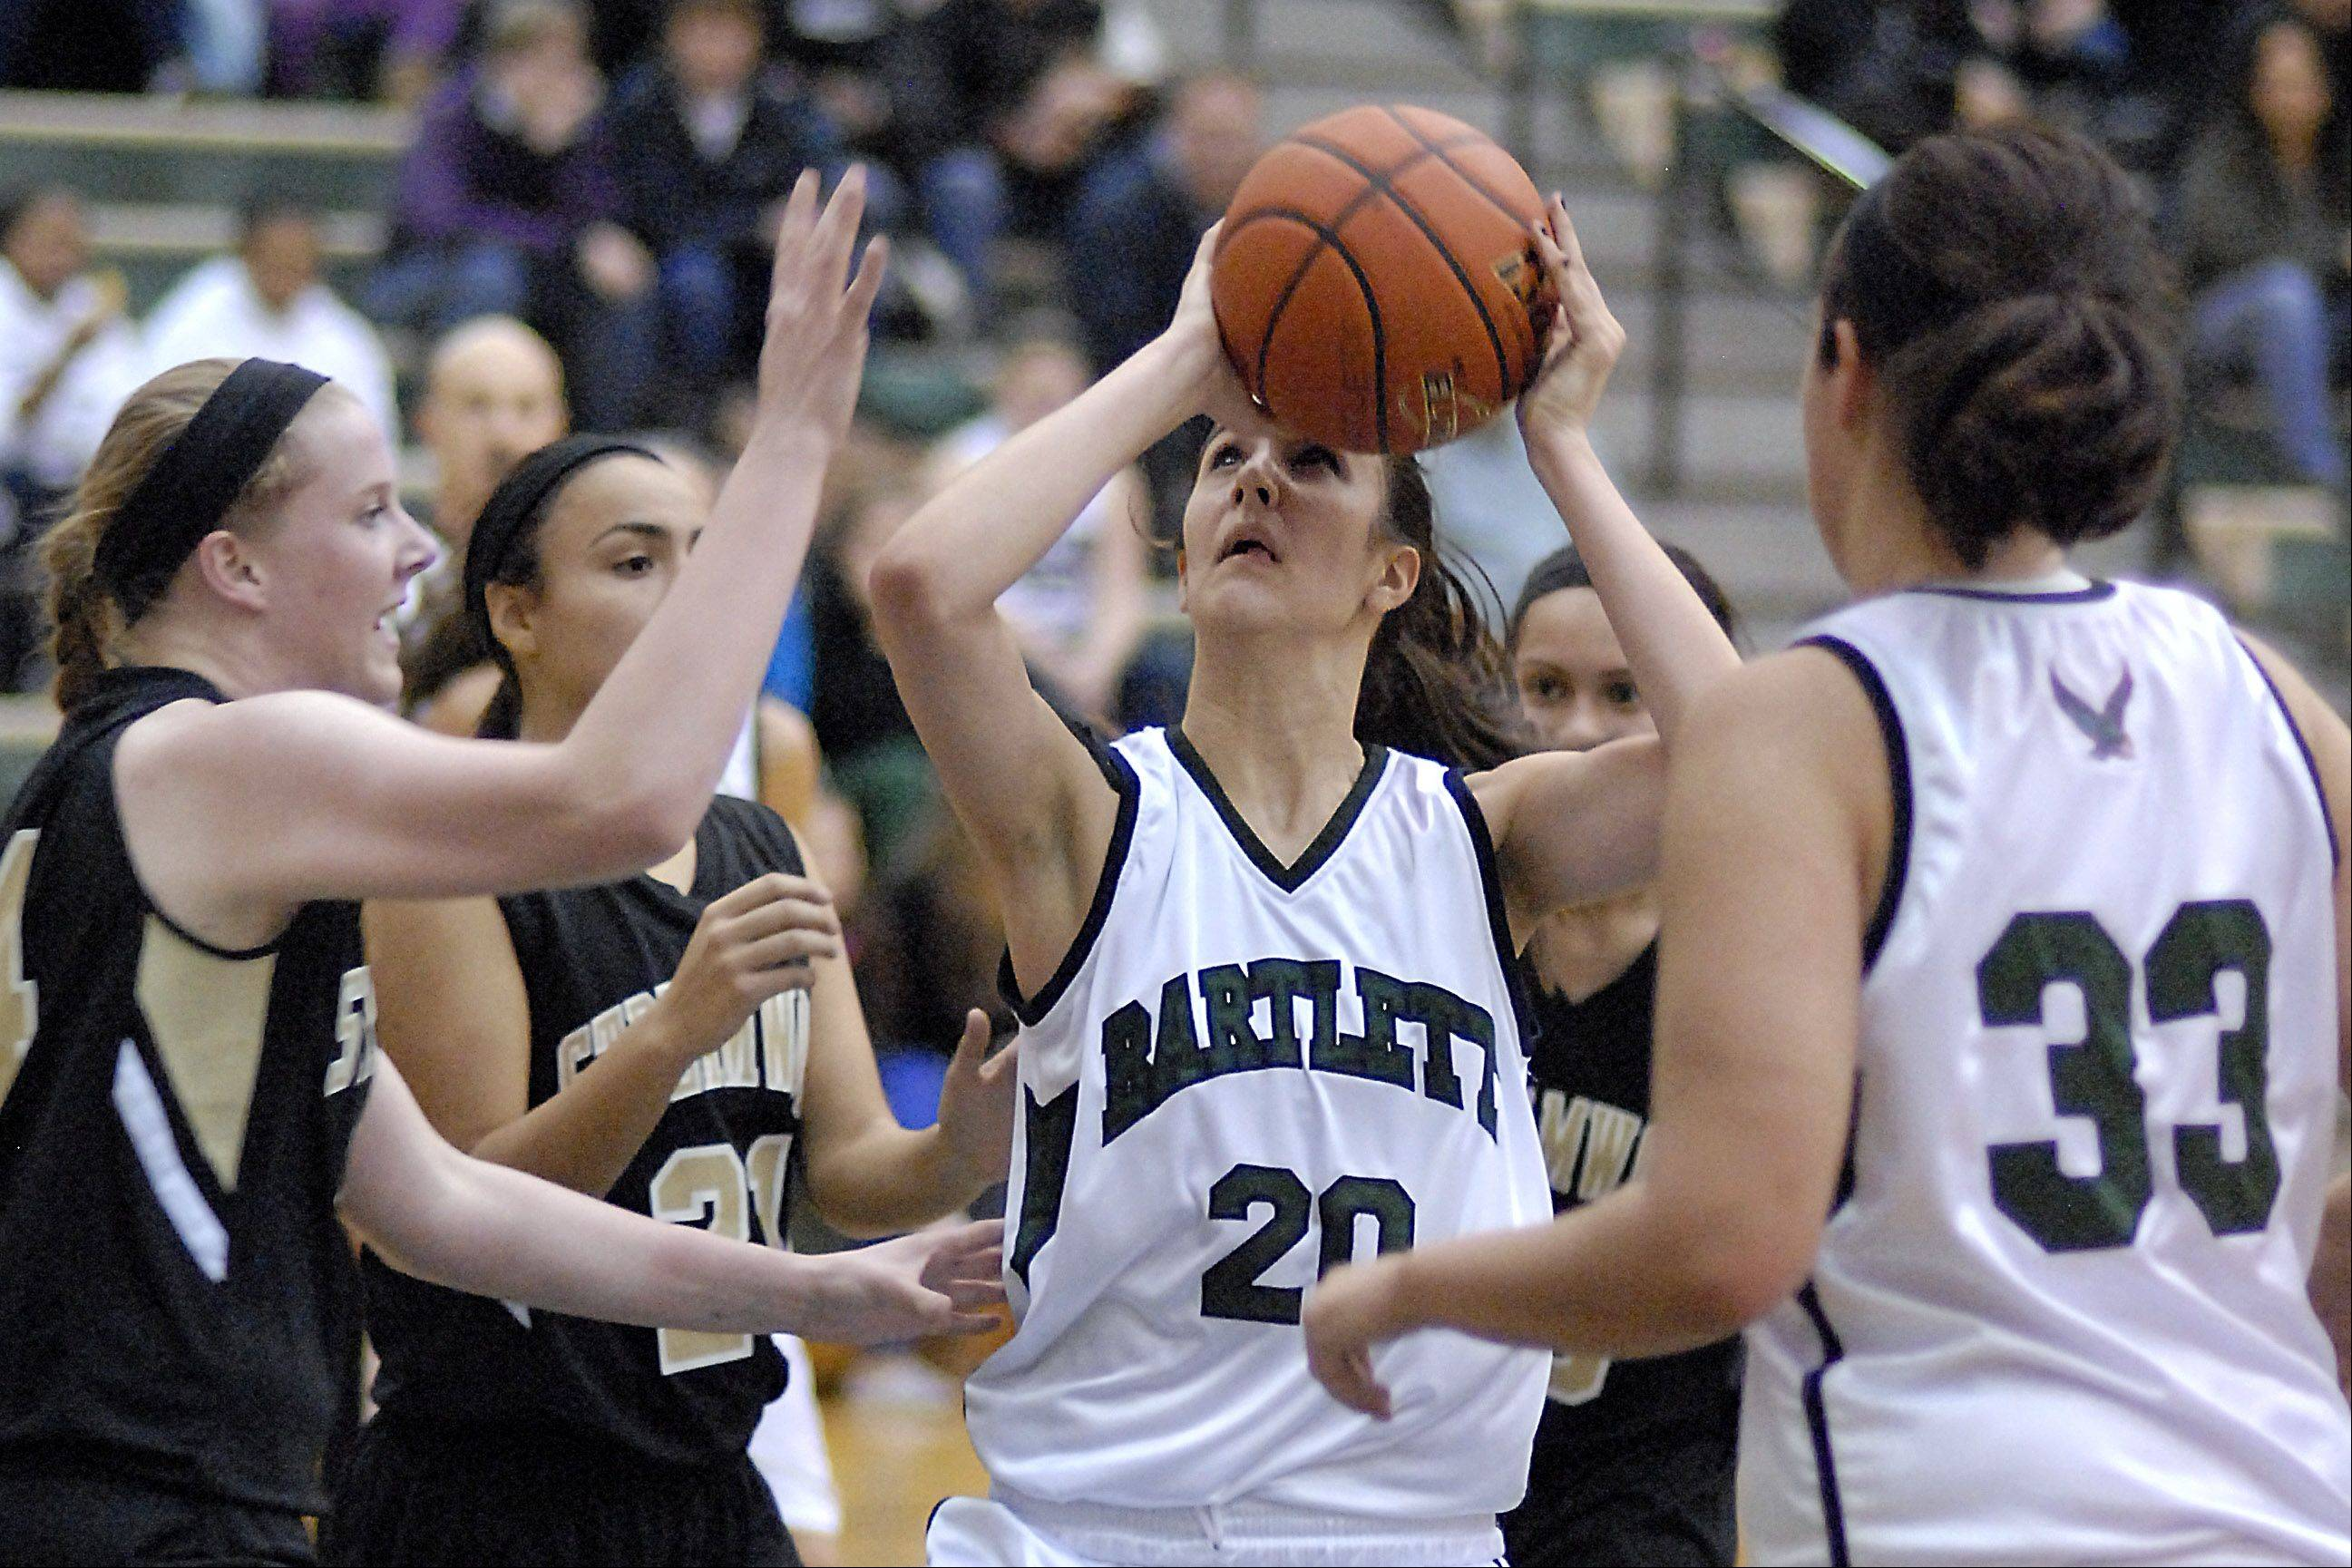 Streamwood's Hannah McGlone attempts to block a shot by Bartlett's Elizabeth Arco in the second quarter.